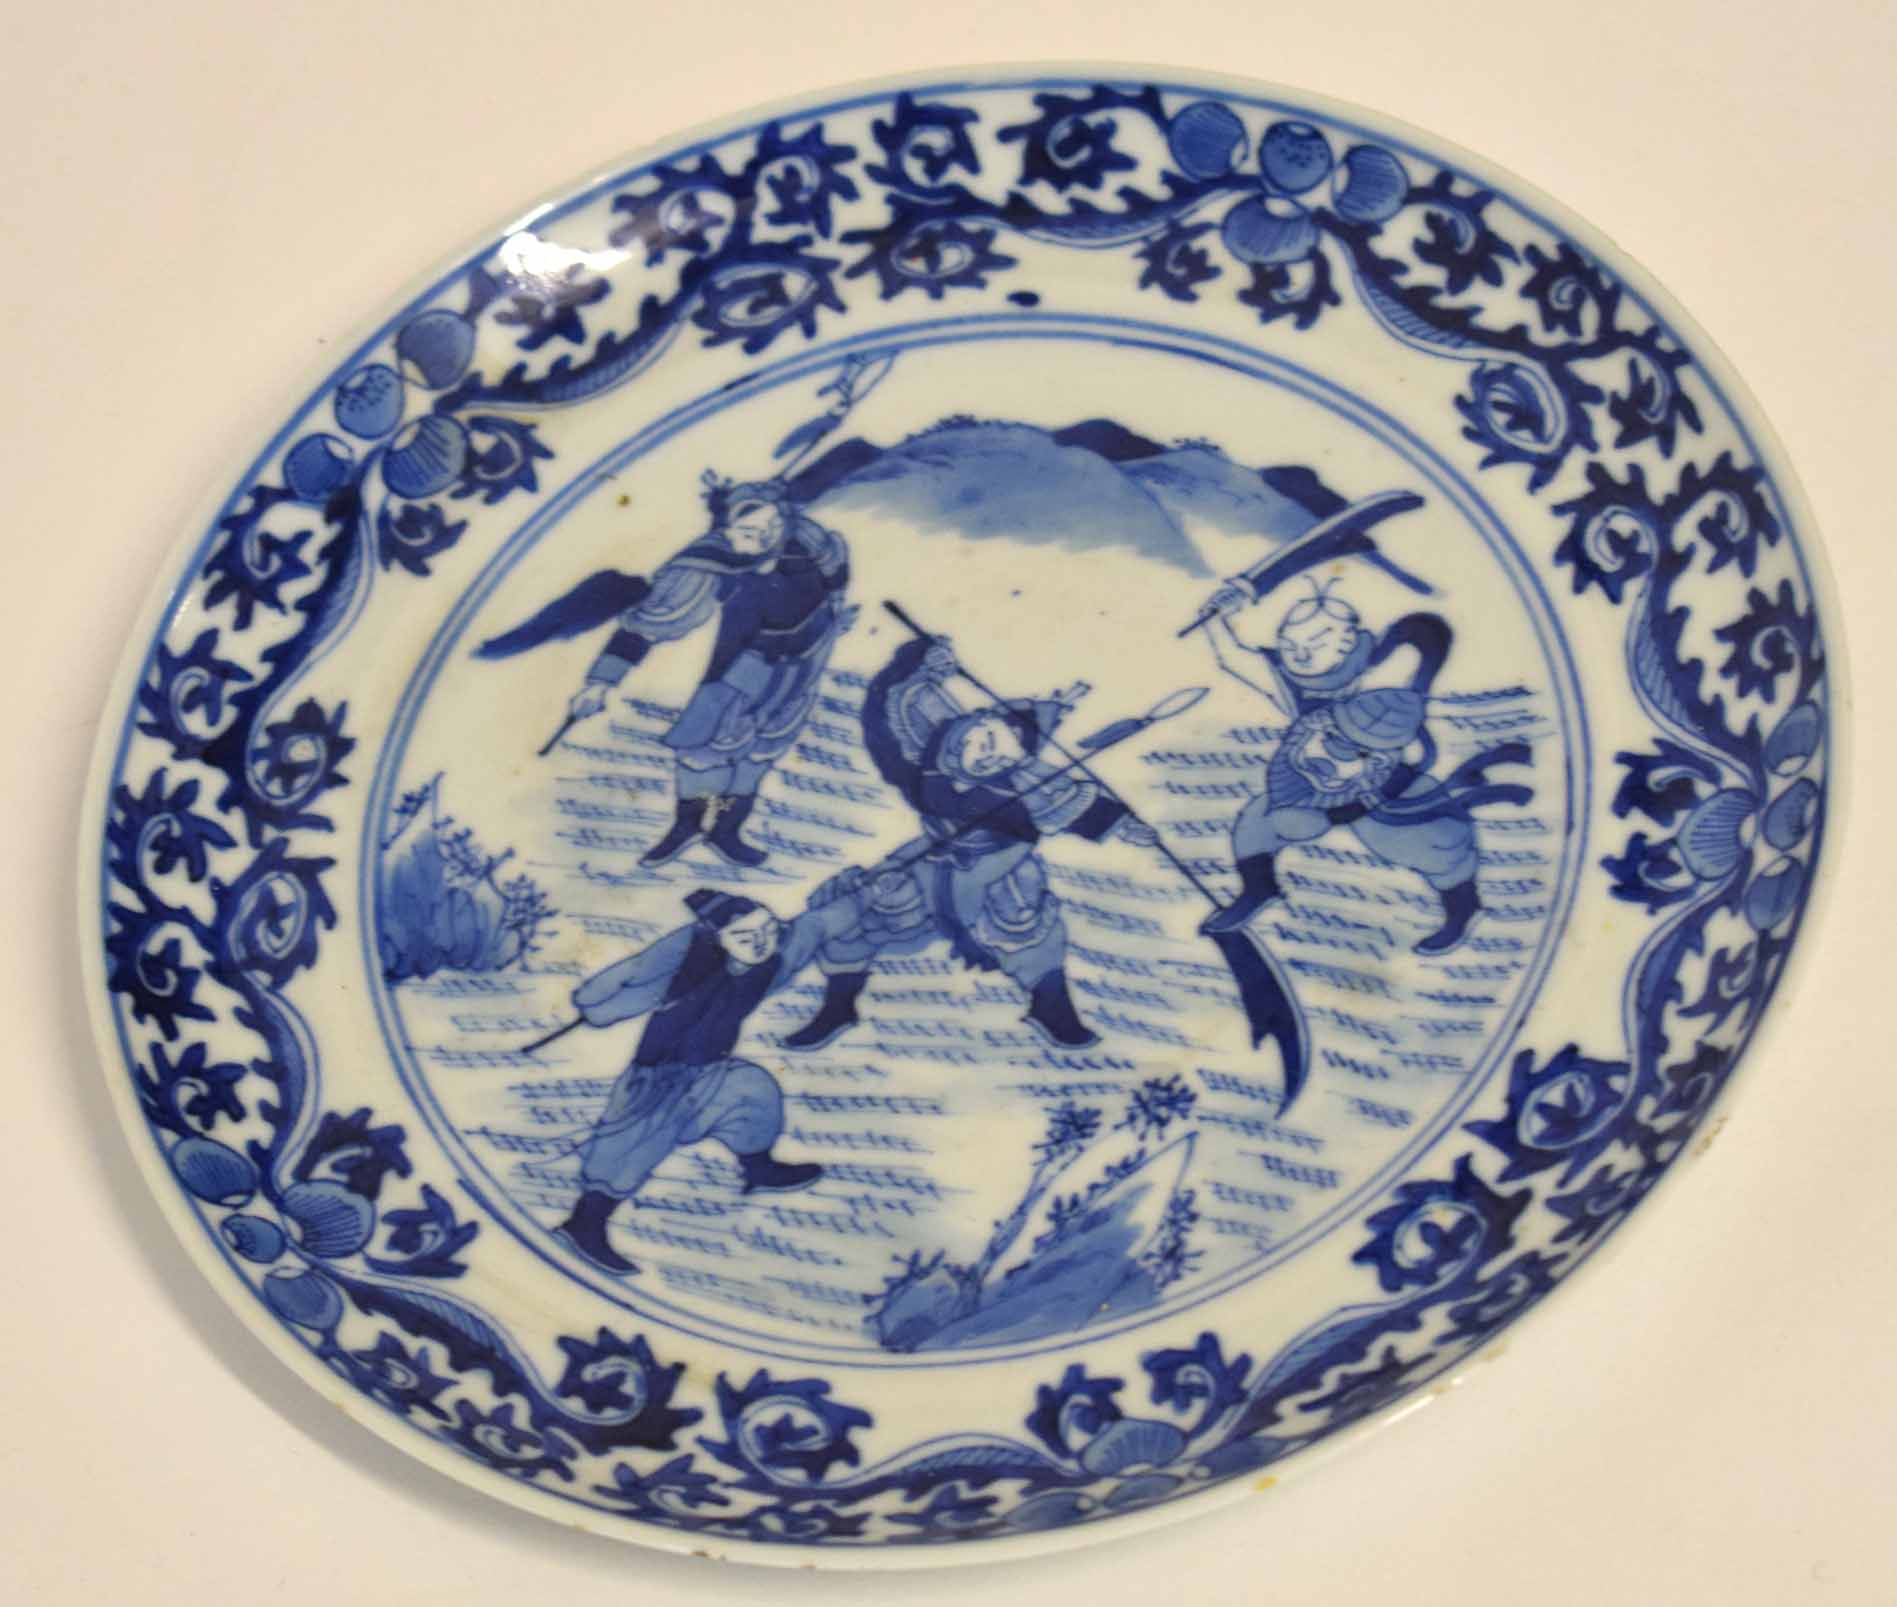 Lot 44 - Chinese blue and white dish, the centre decorated with Chinese warriors, 20cm diam